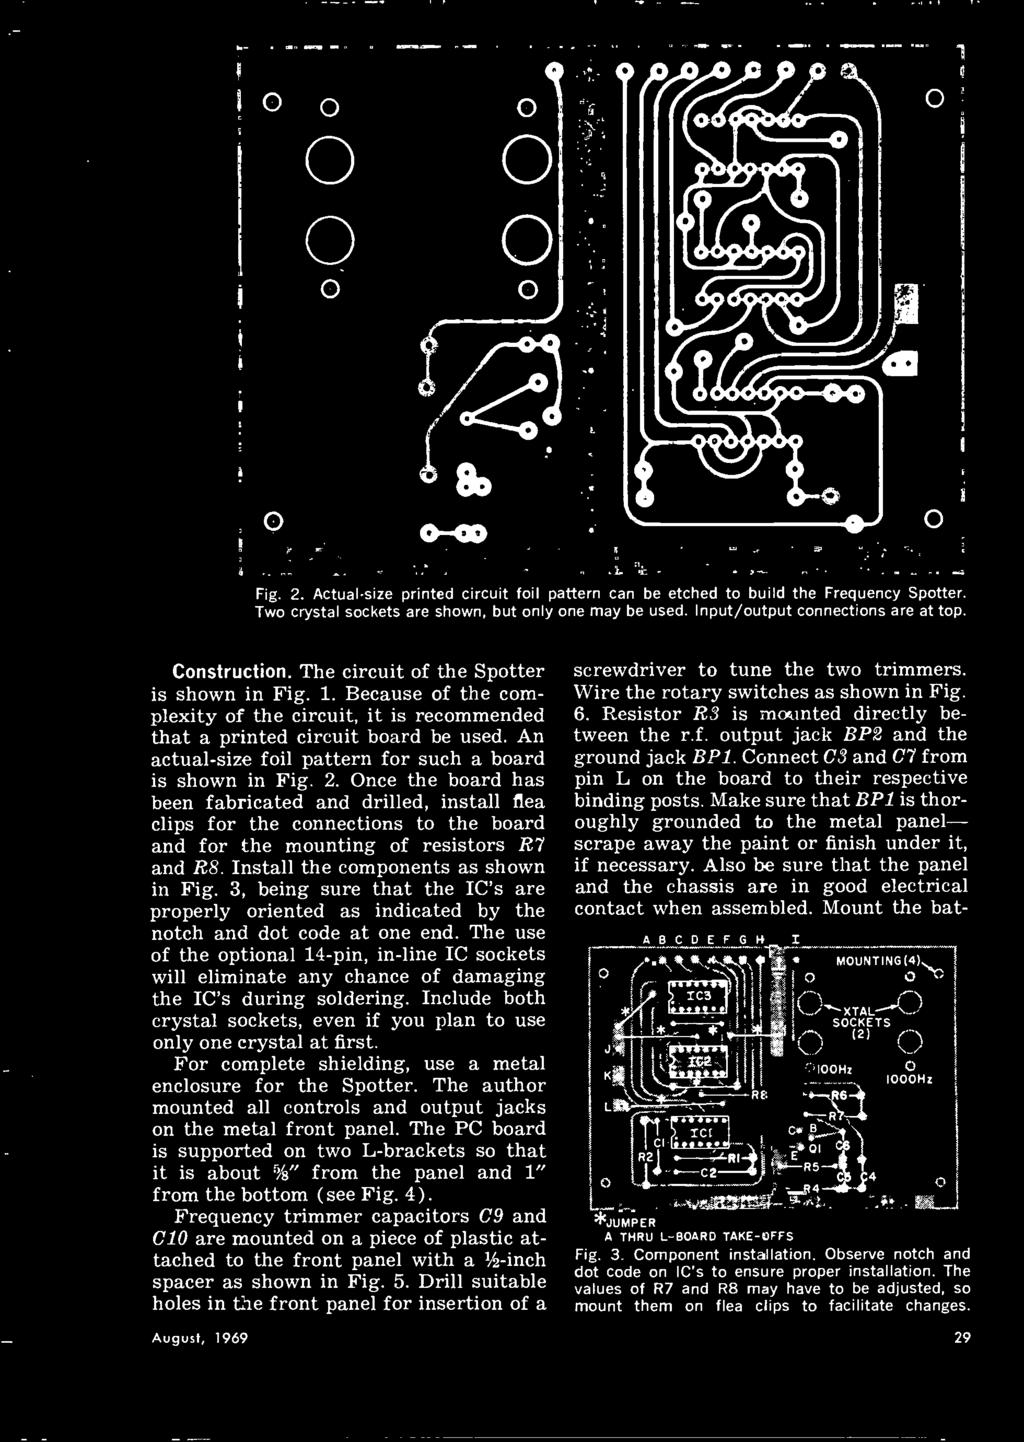 Whats New In 1970 Cb Equipment What To Buy Ham Radio Augugsq Dwell R5 Hanra 110 Quad Wiring Diagram An Actual Size Foil Pattern For Such A Board Is Shown Fig 2